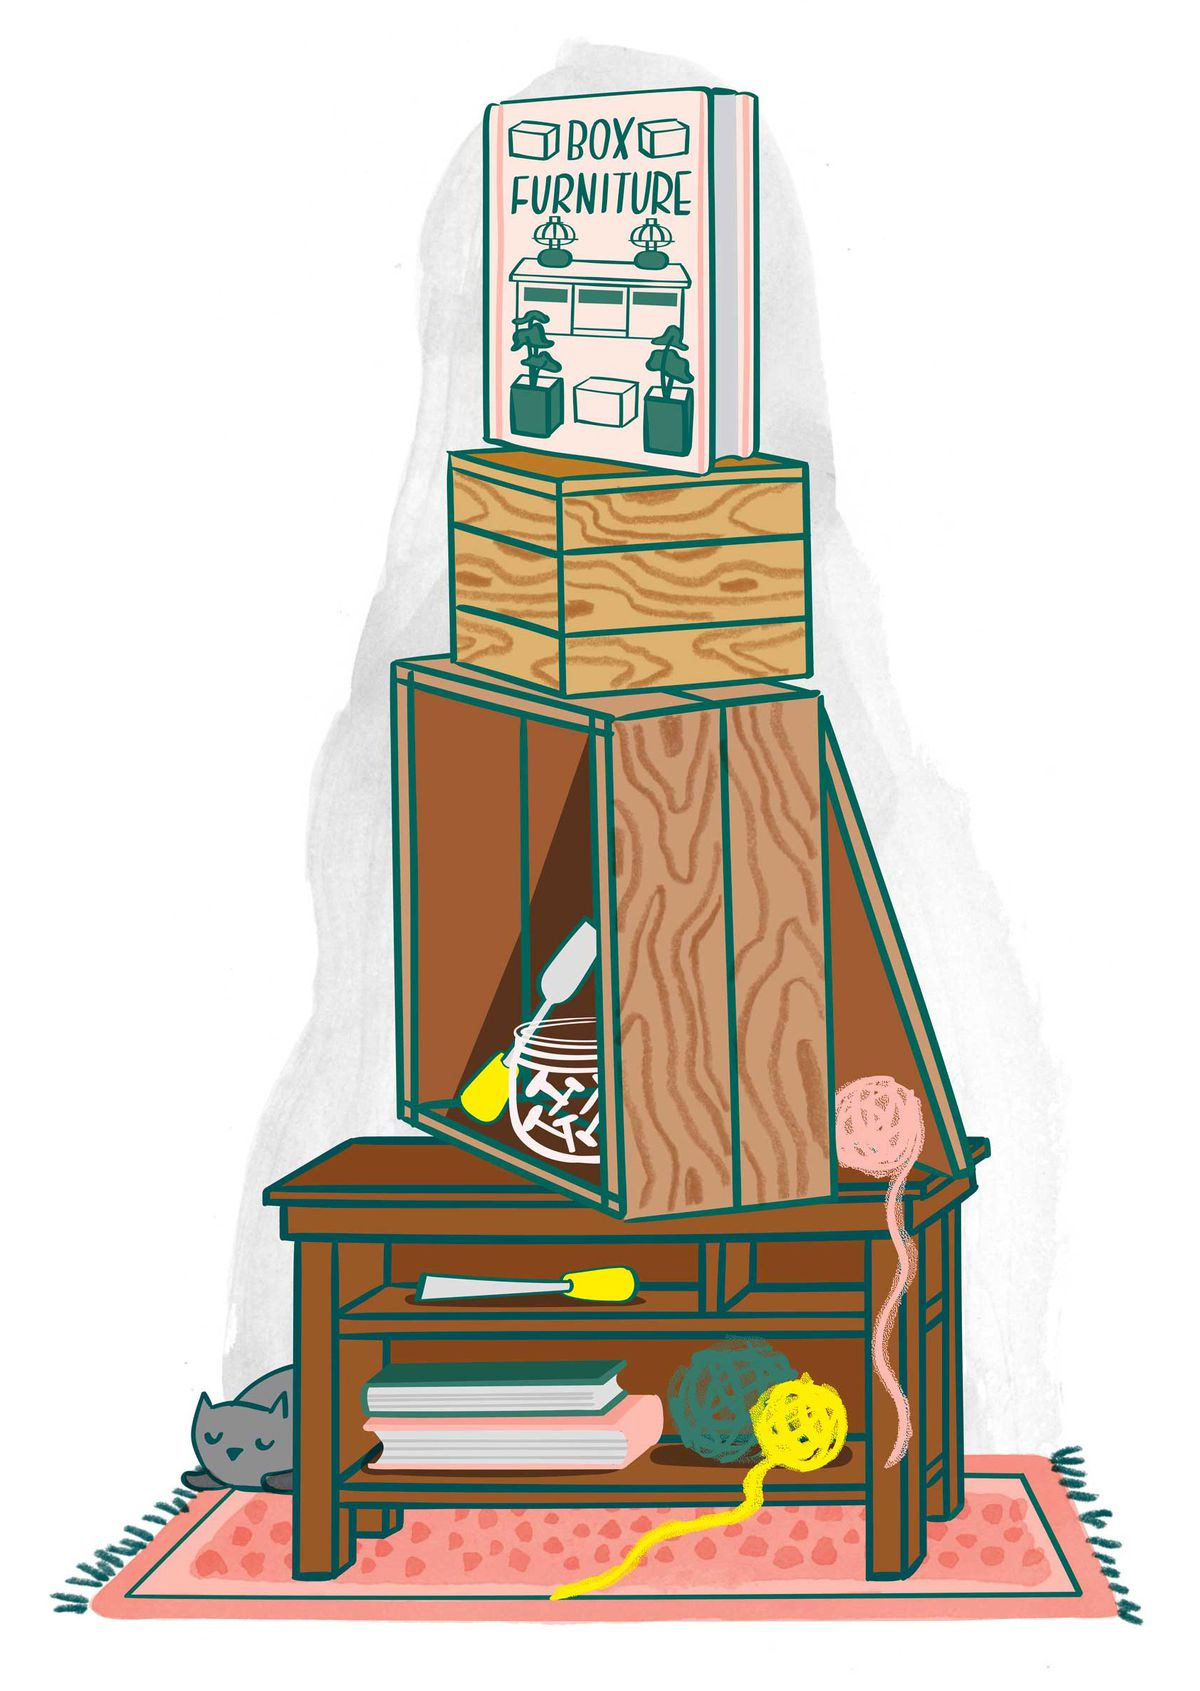 A vertical stack of wooden crates, arranged with tools and yarn balls tucked inside, sit with a book titled 'Box Furniture' propped on top. Illustration.